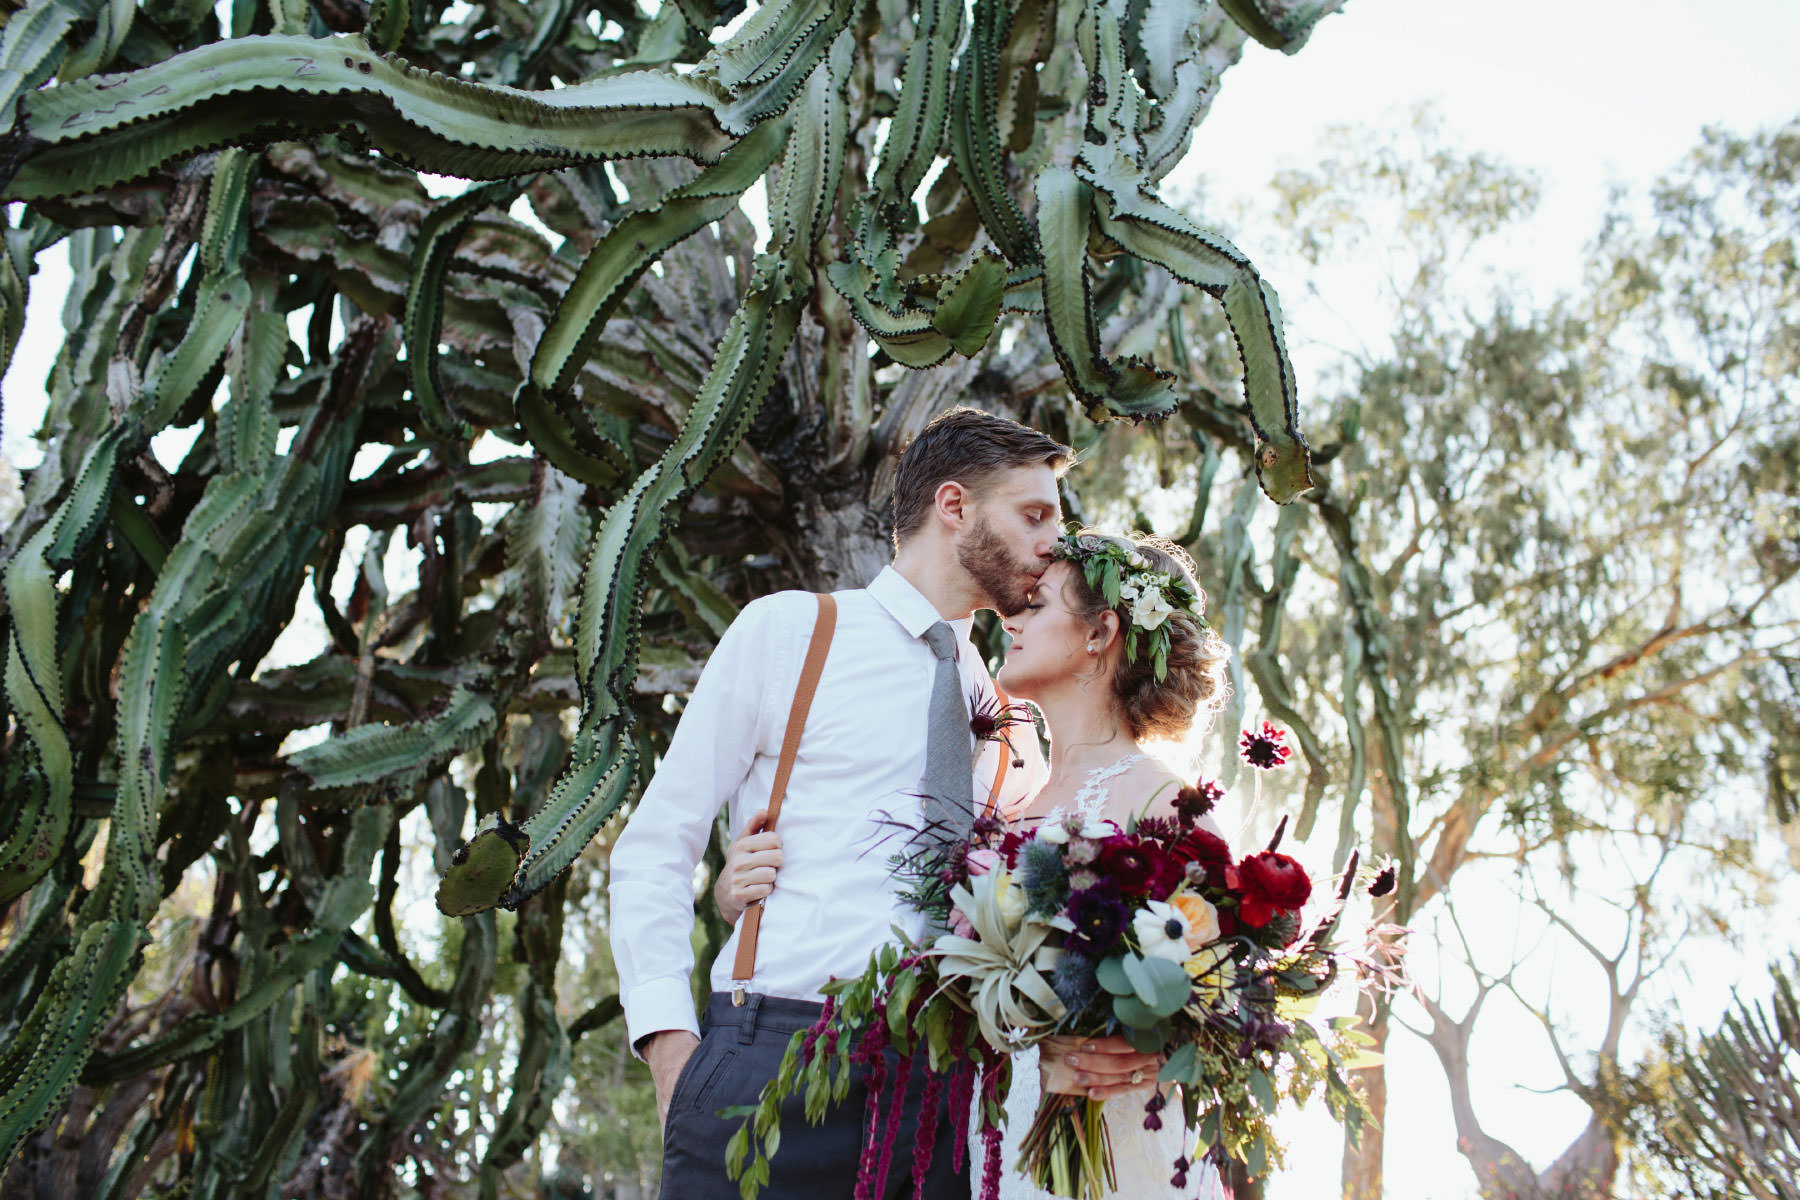 Couple kissing after their wedding at the Balboa Park Cactus Garden